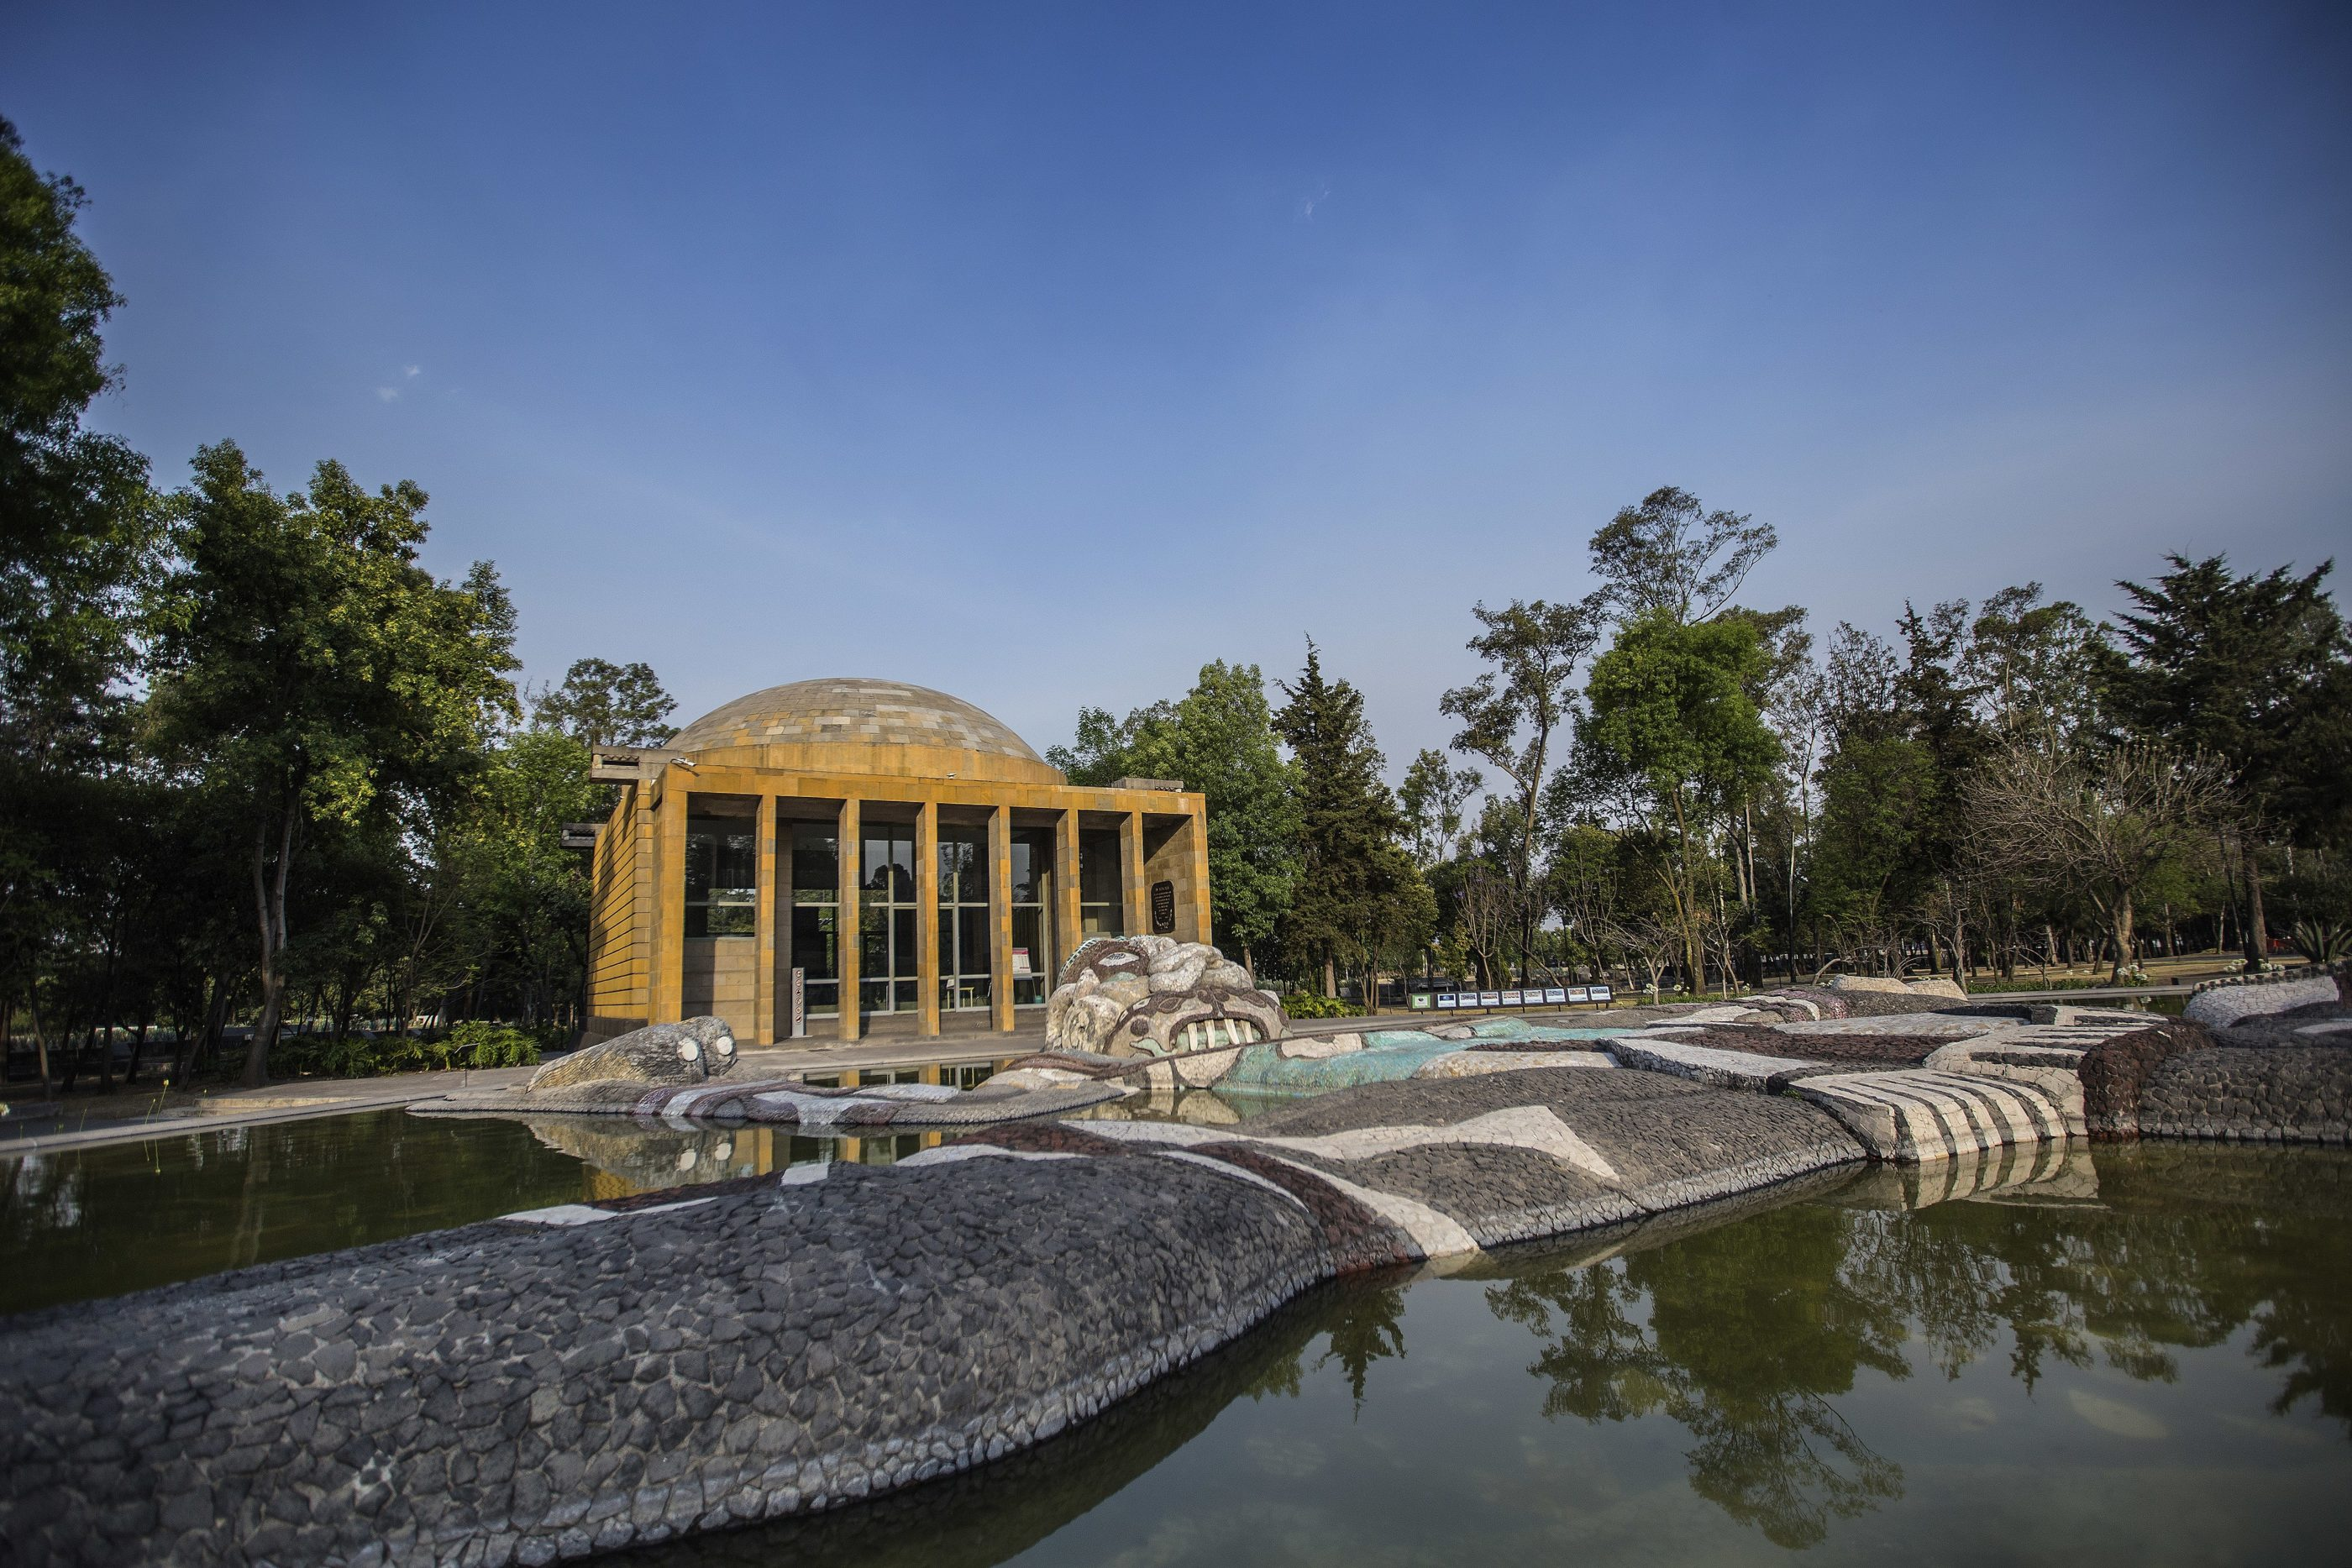 The spring with pump building in the background inside Chapultepec Forest.